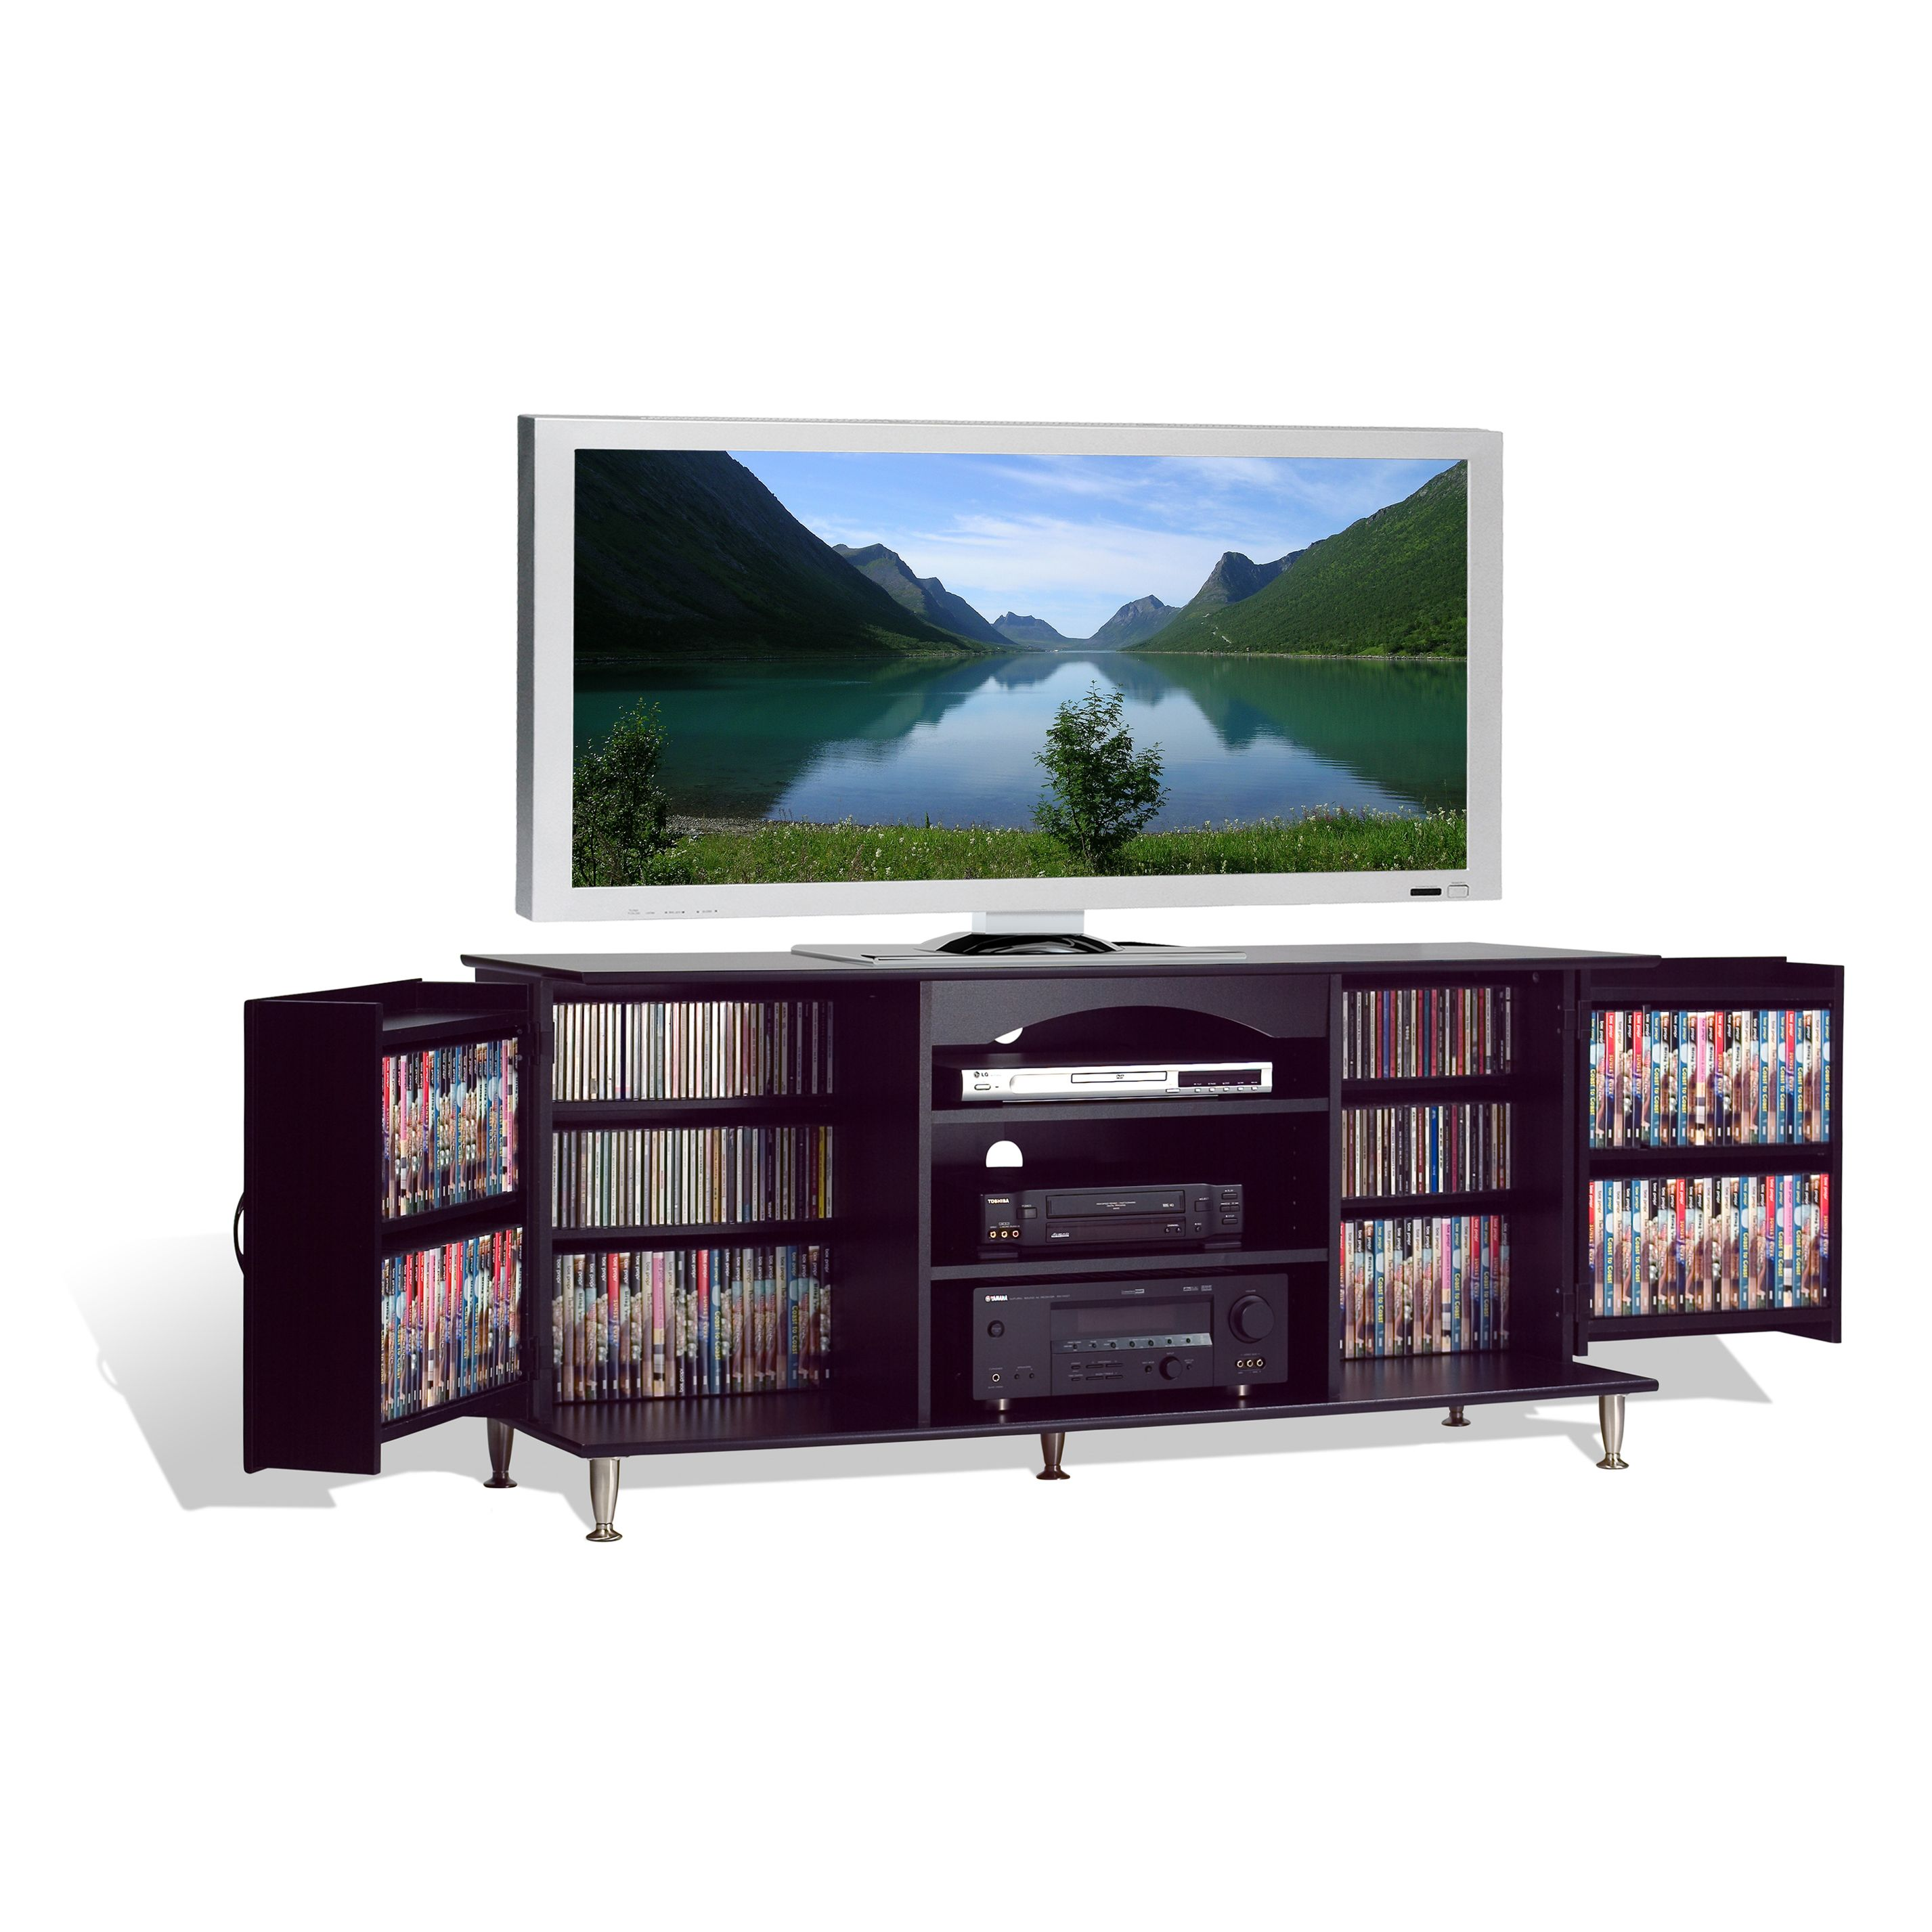 Designed for your plasma or LCD TV this sleek console ac modates